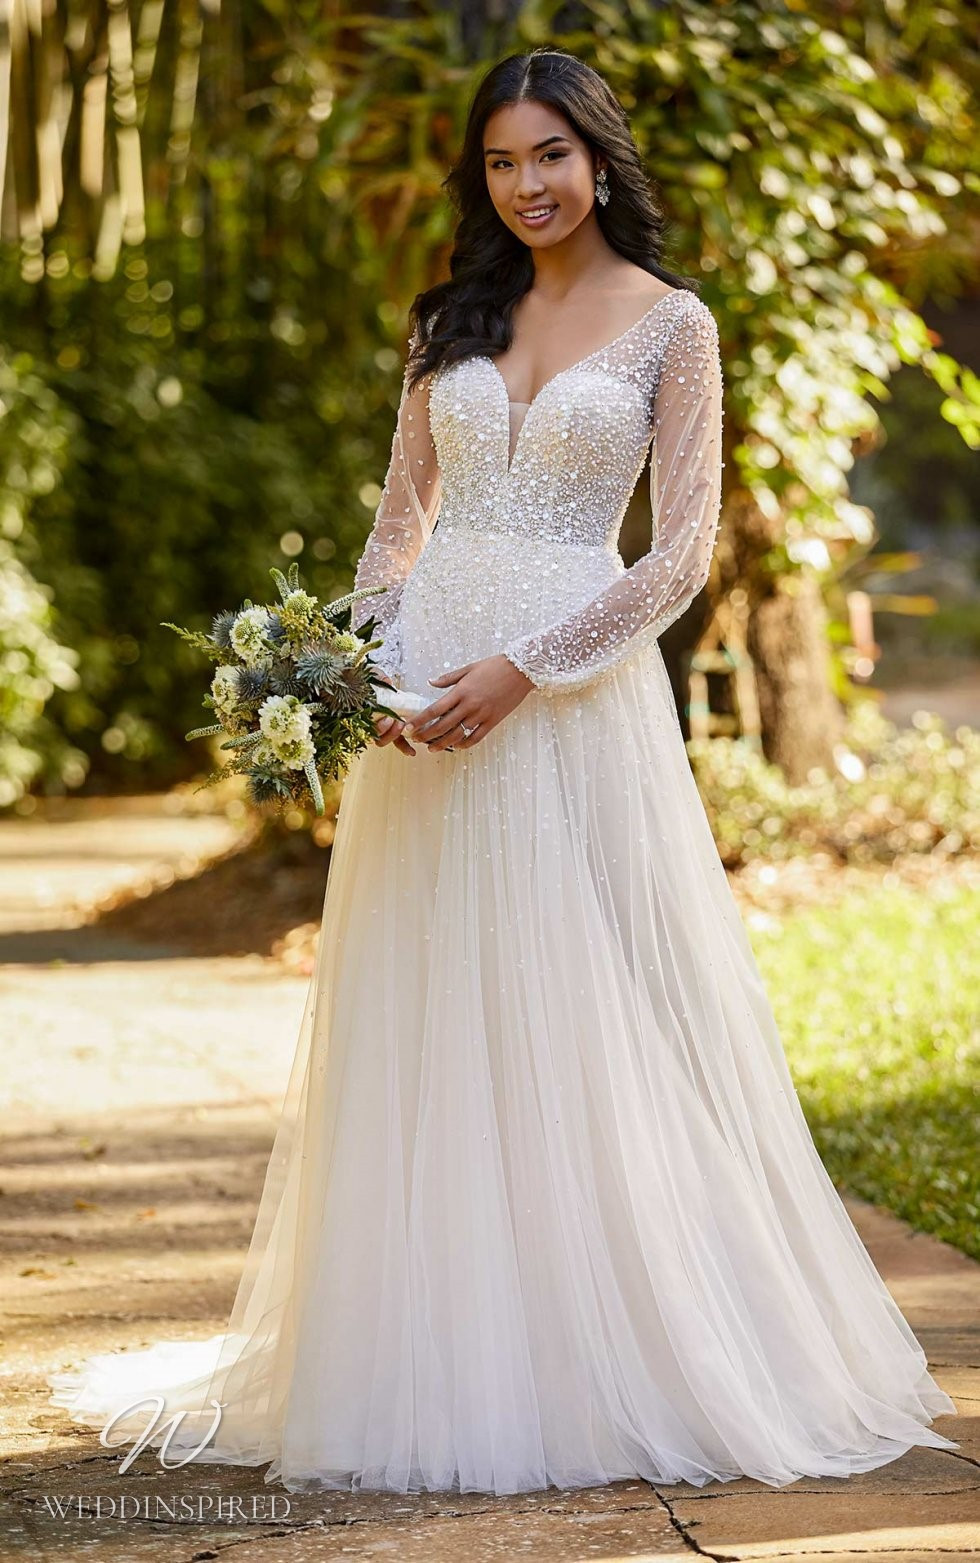 An Essense of Australia chiffon A-line wedding dress with long sleeves and pearls